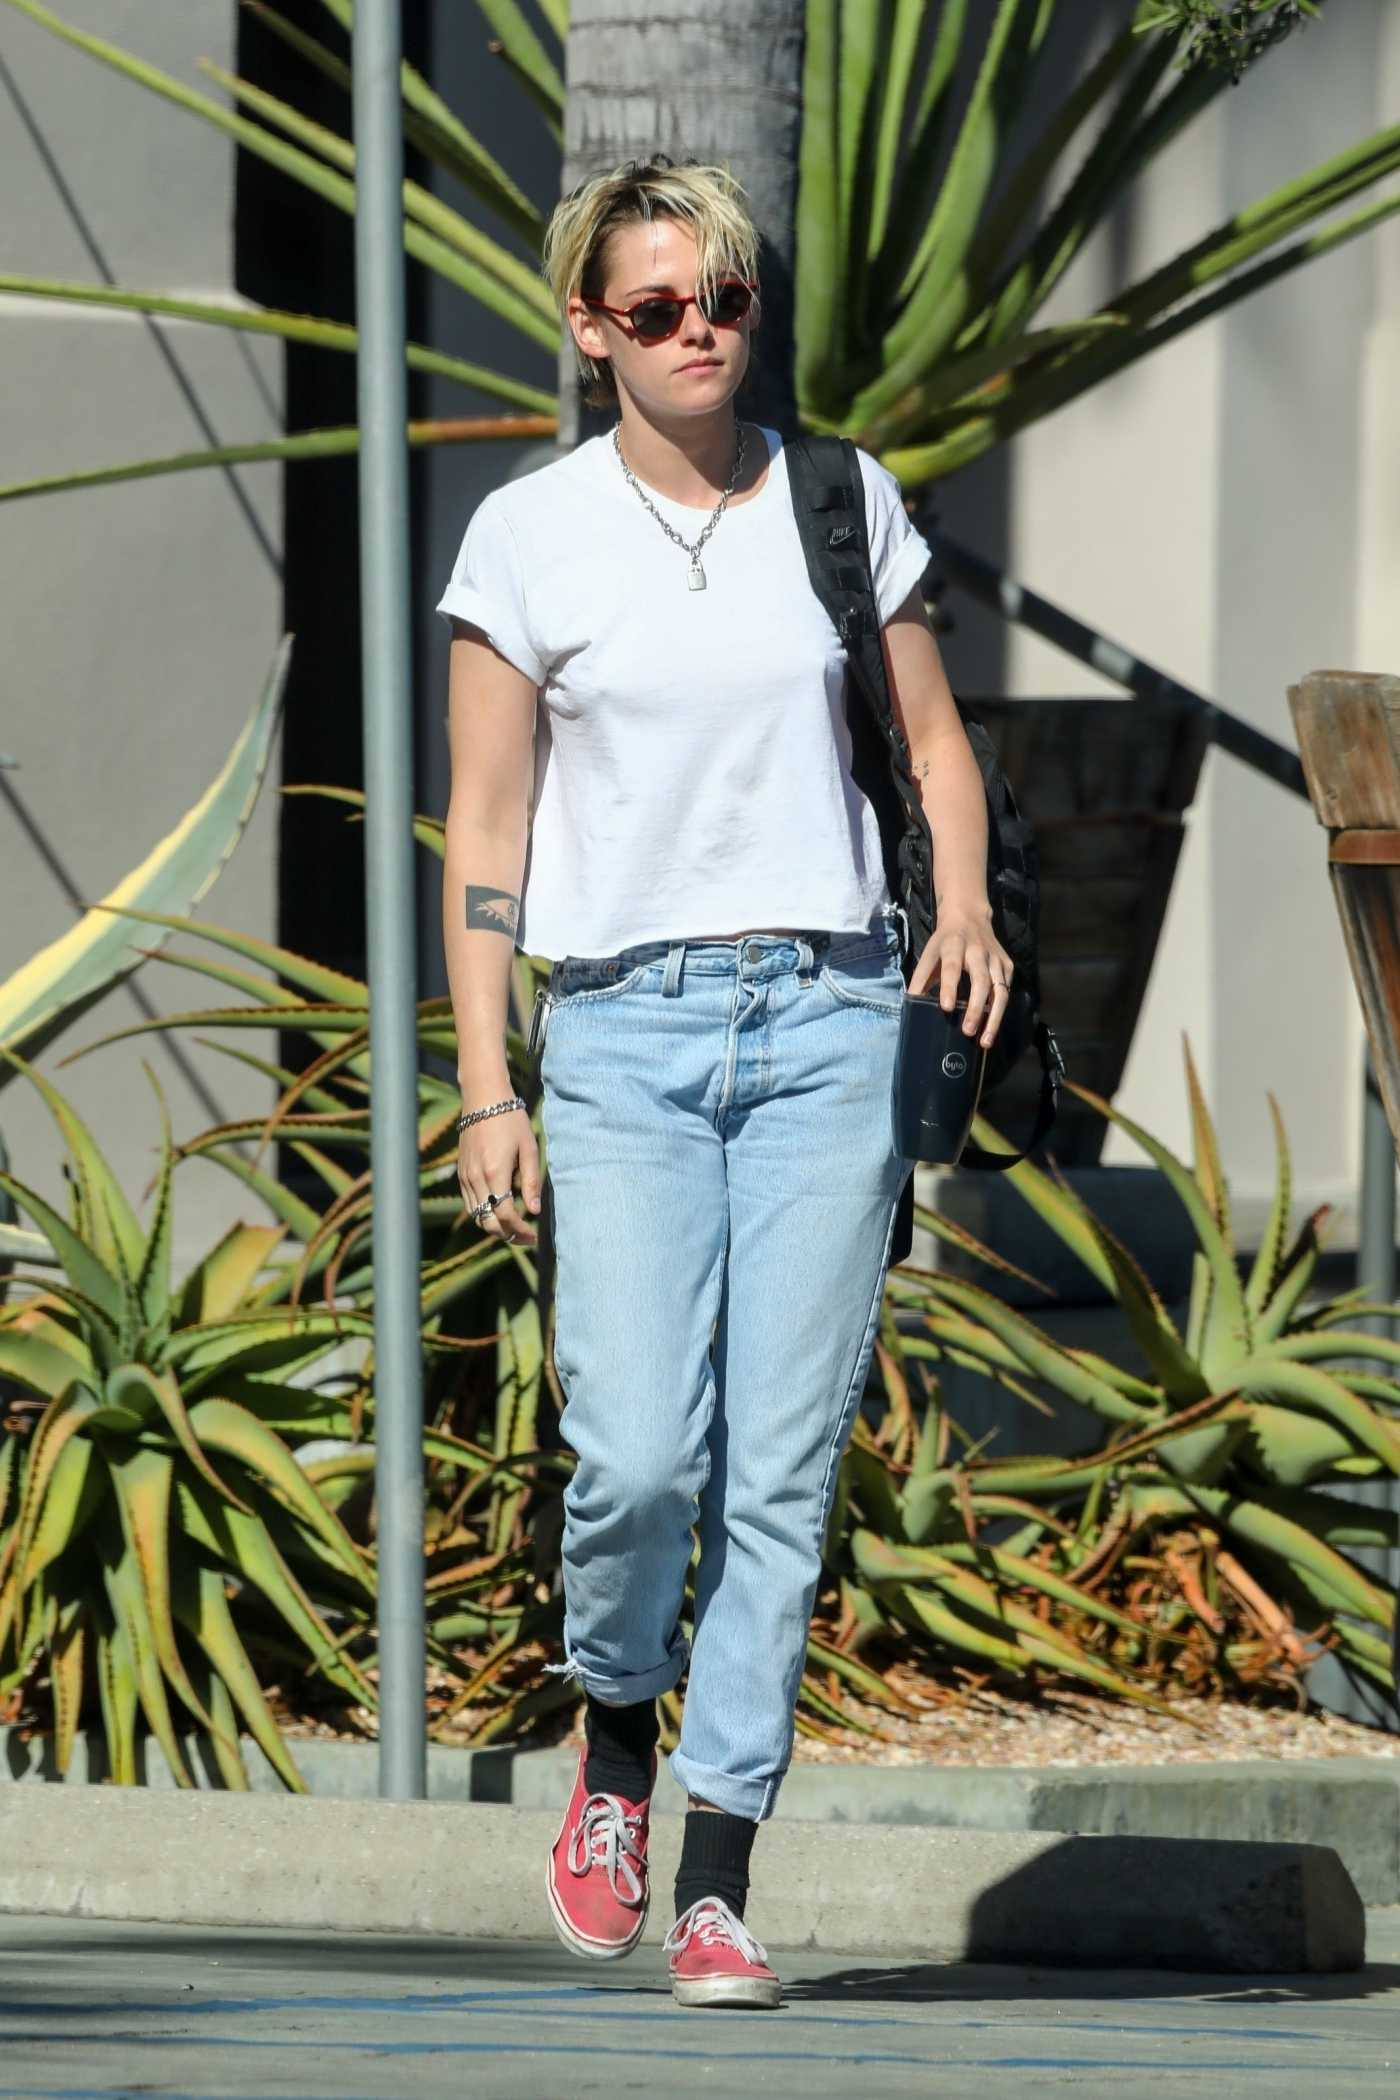 Kristen Stewart in a White Tee Was Seen Out in Los Angeles 08/21/2019